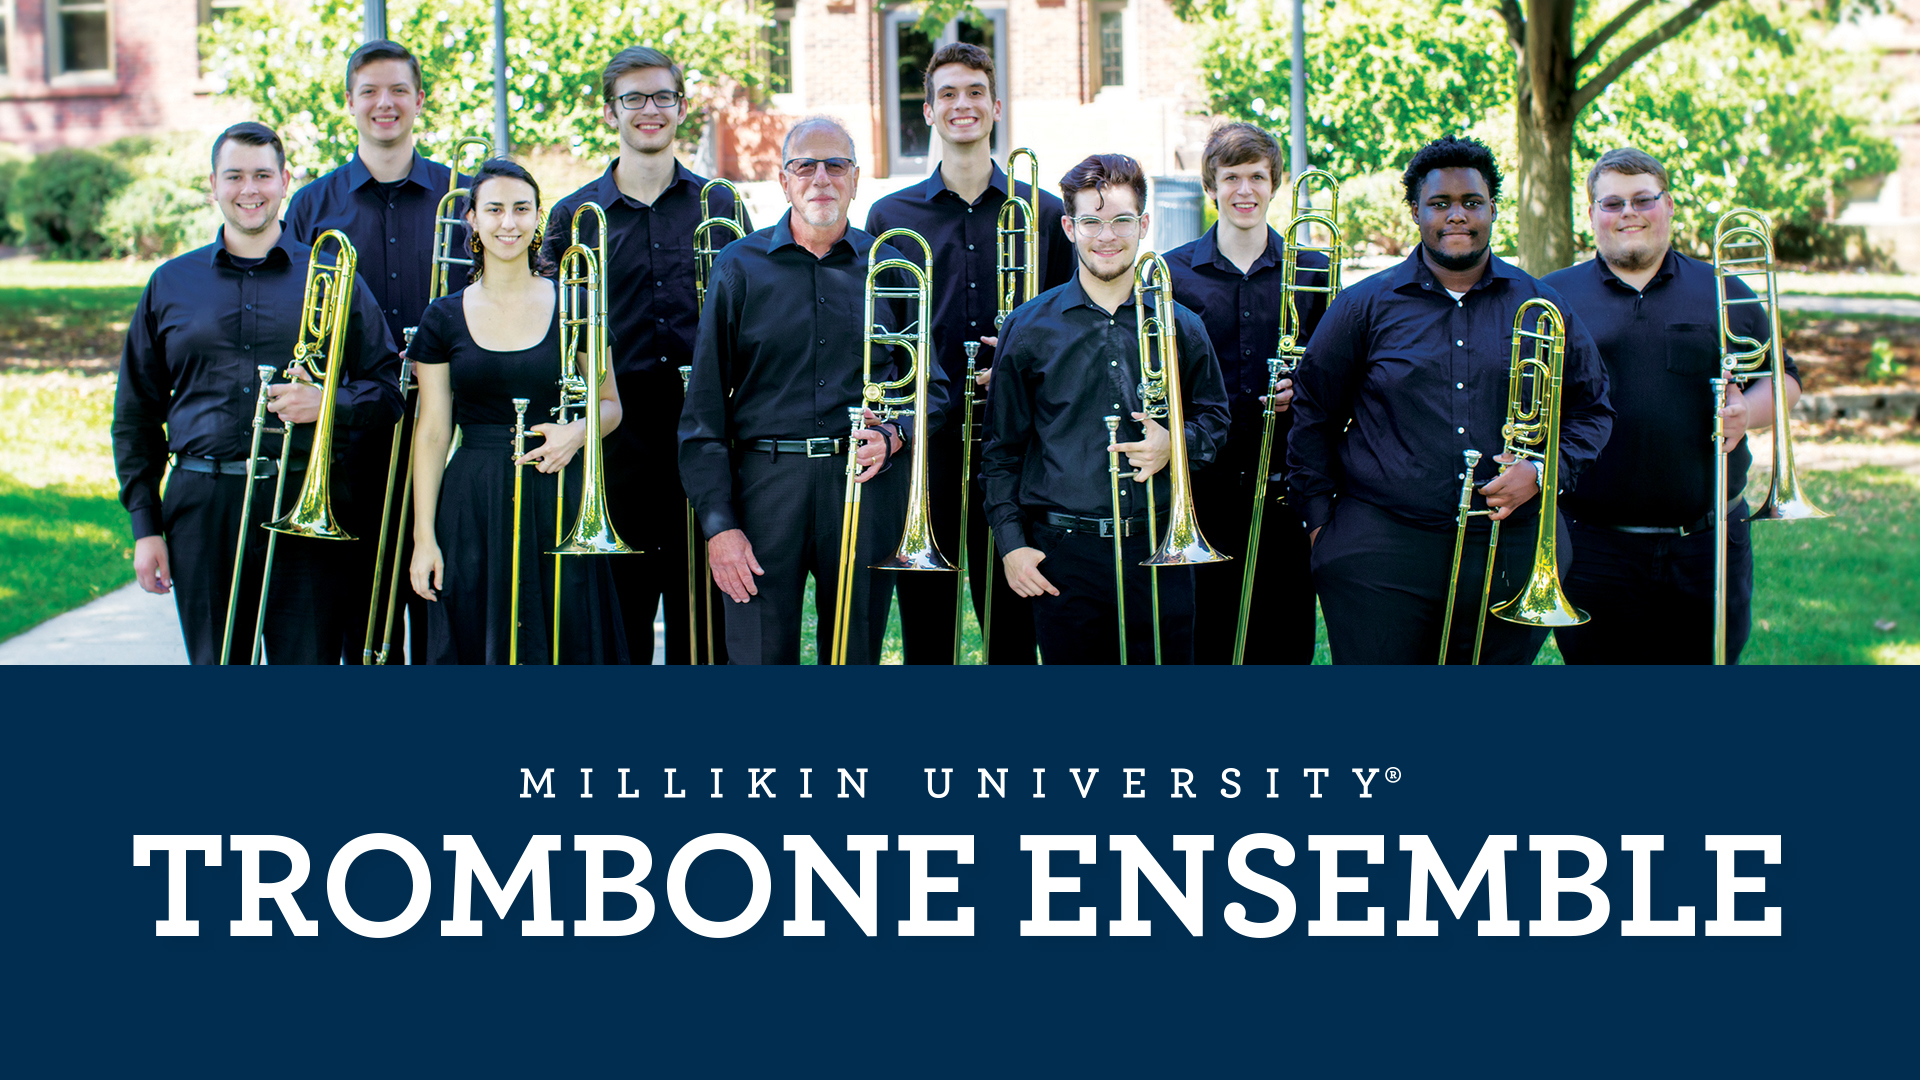 Millikin University Trombone Ensemble